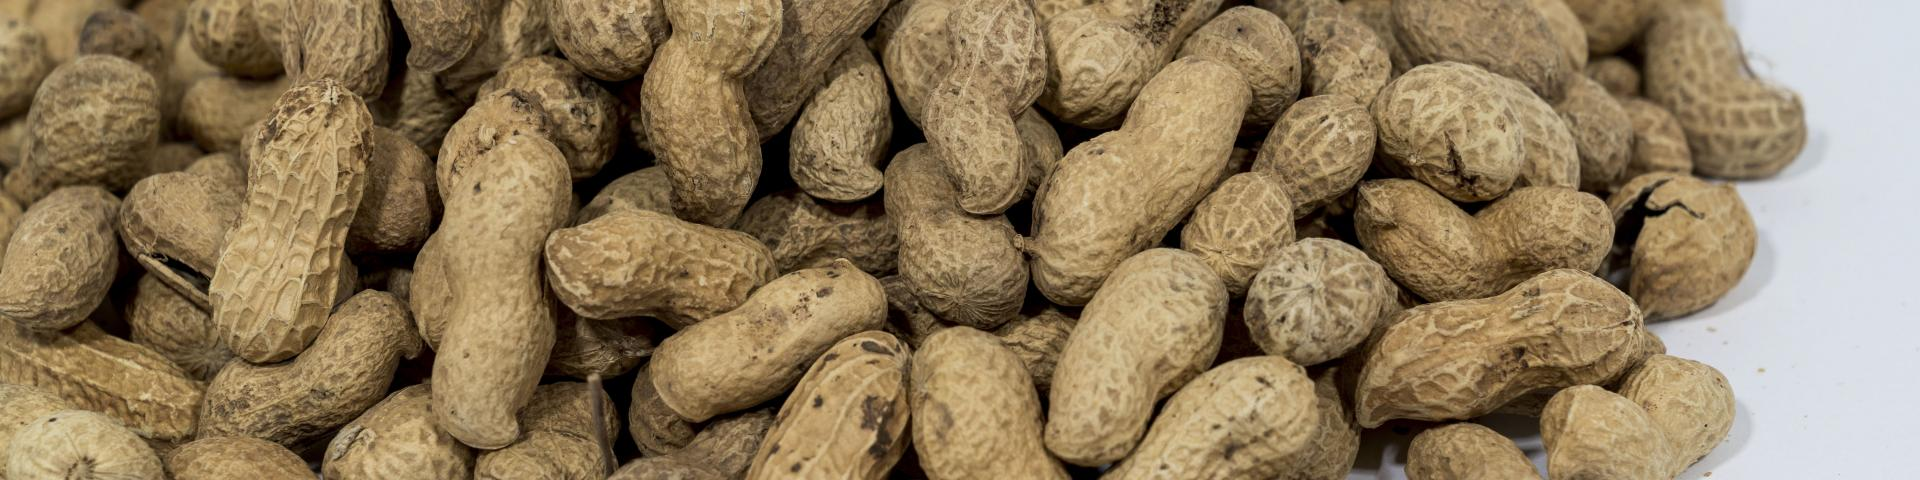 Exporting Groundnuts For The Food Manufacturing And Oil Crushing Industry In Europe Cbi Centre For The Promotion Of Imports From Developing Countries